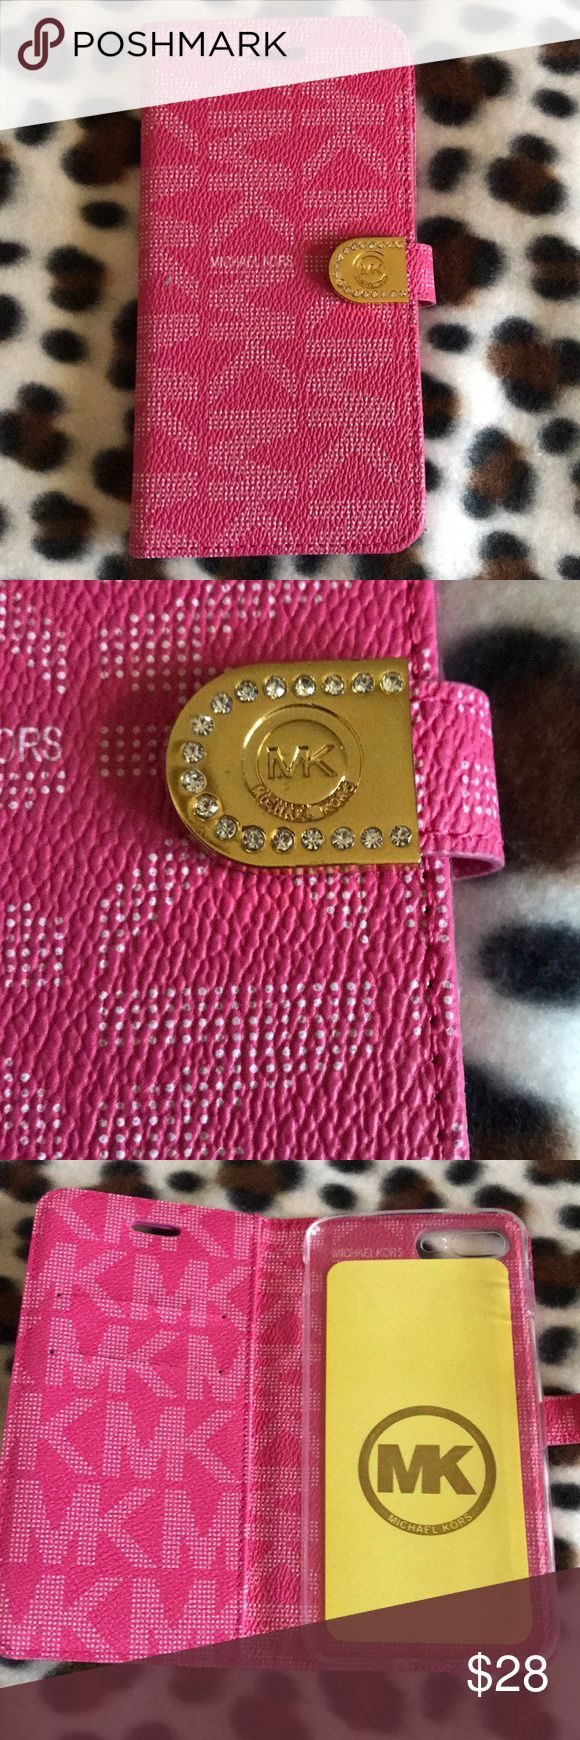 Michael Kors iPhone 7+ folio Pink iPhone 7+ case. Authentic, brand new with packaging. Only removed for photo. KORS Michael Kors Accessories Phone Cases